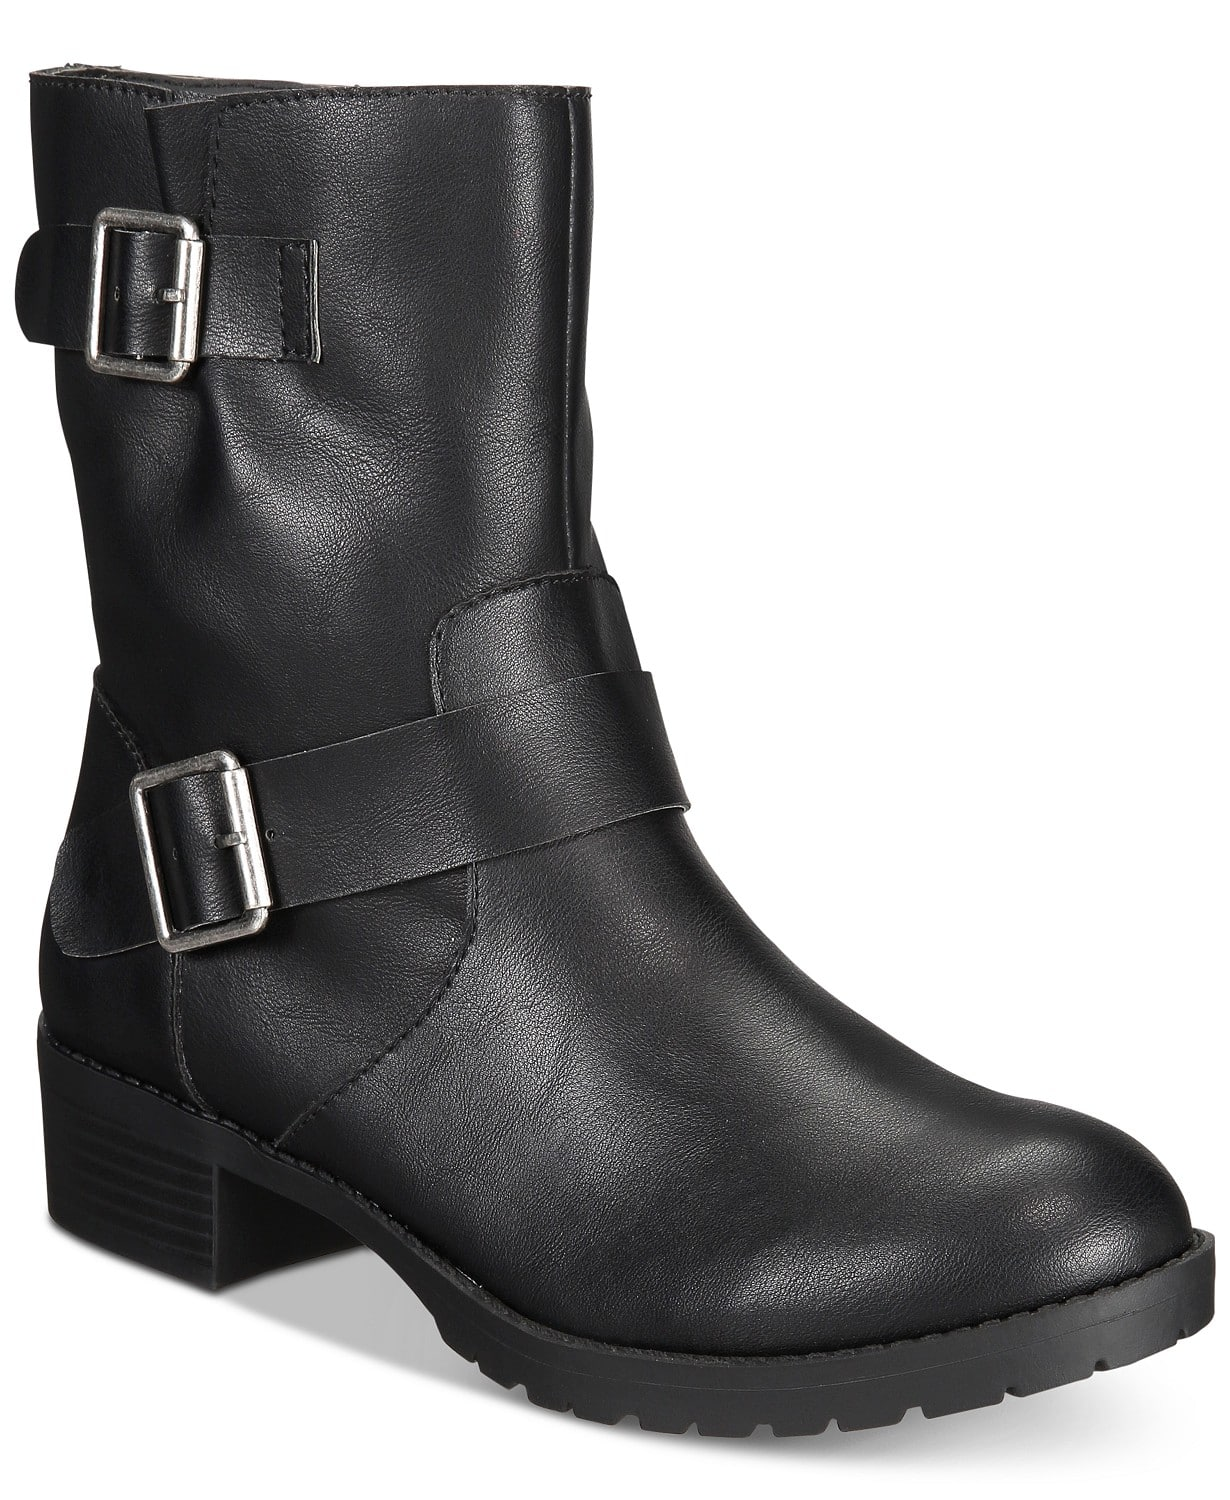 ab40daada2 Macy's: 75% Off Select Women's Shoes: Style & Co Gianara Moto ...